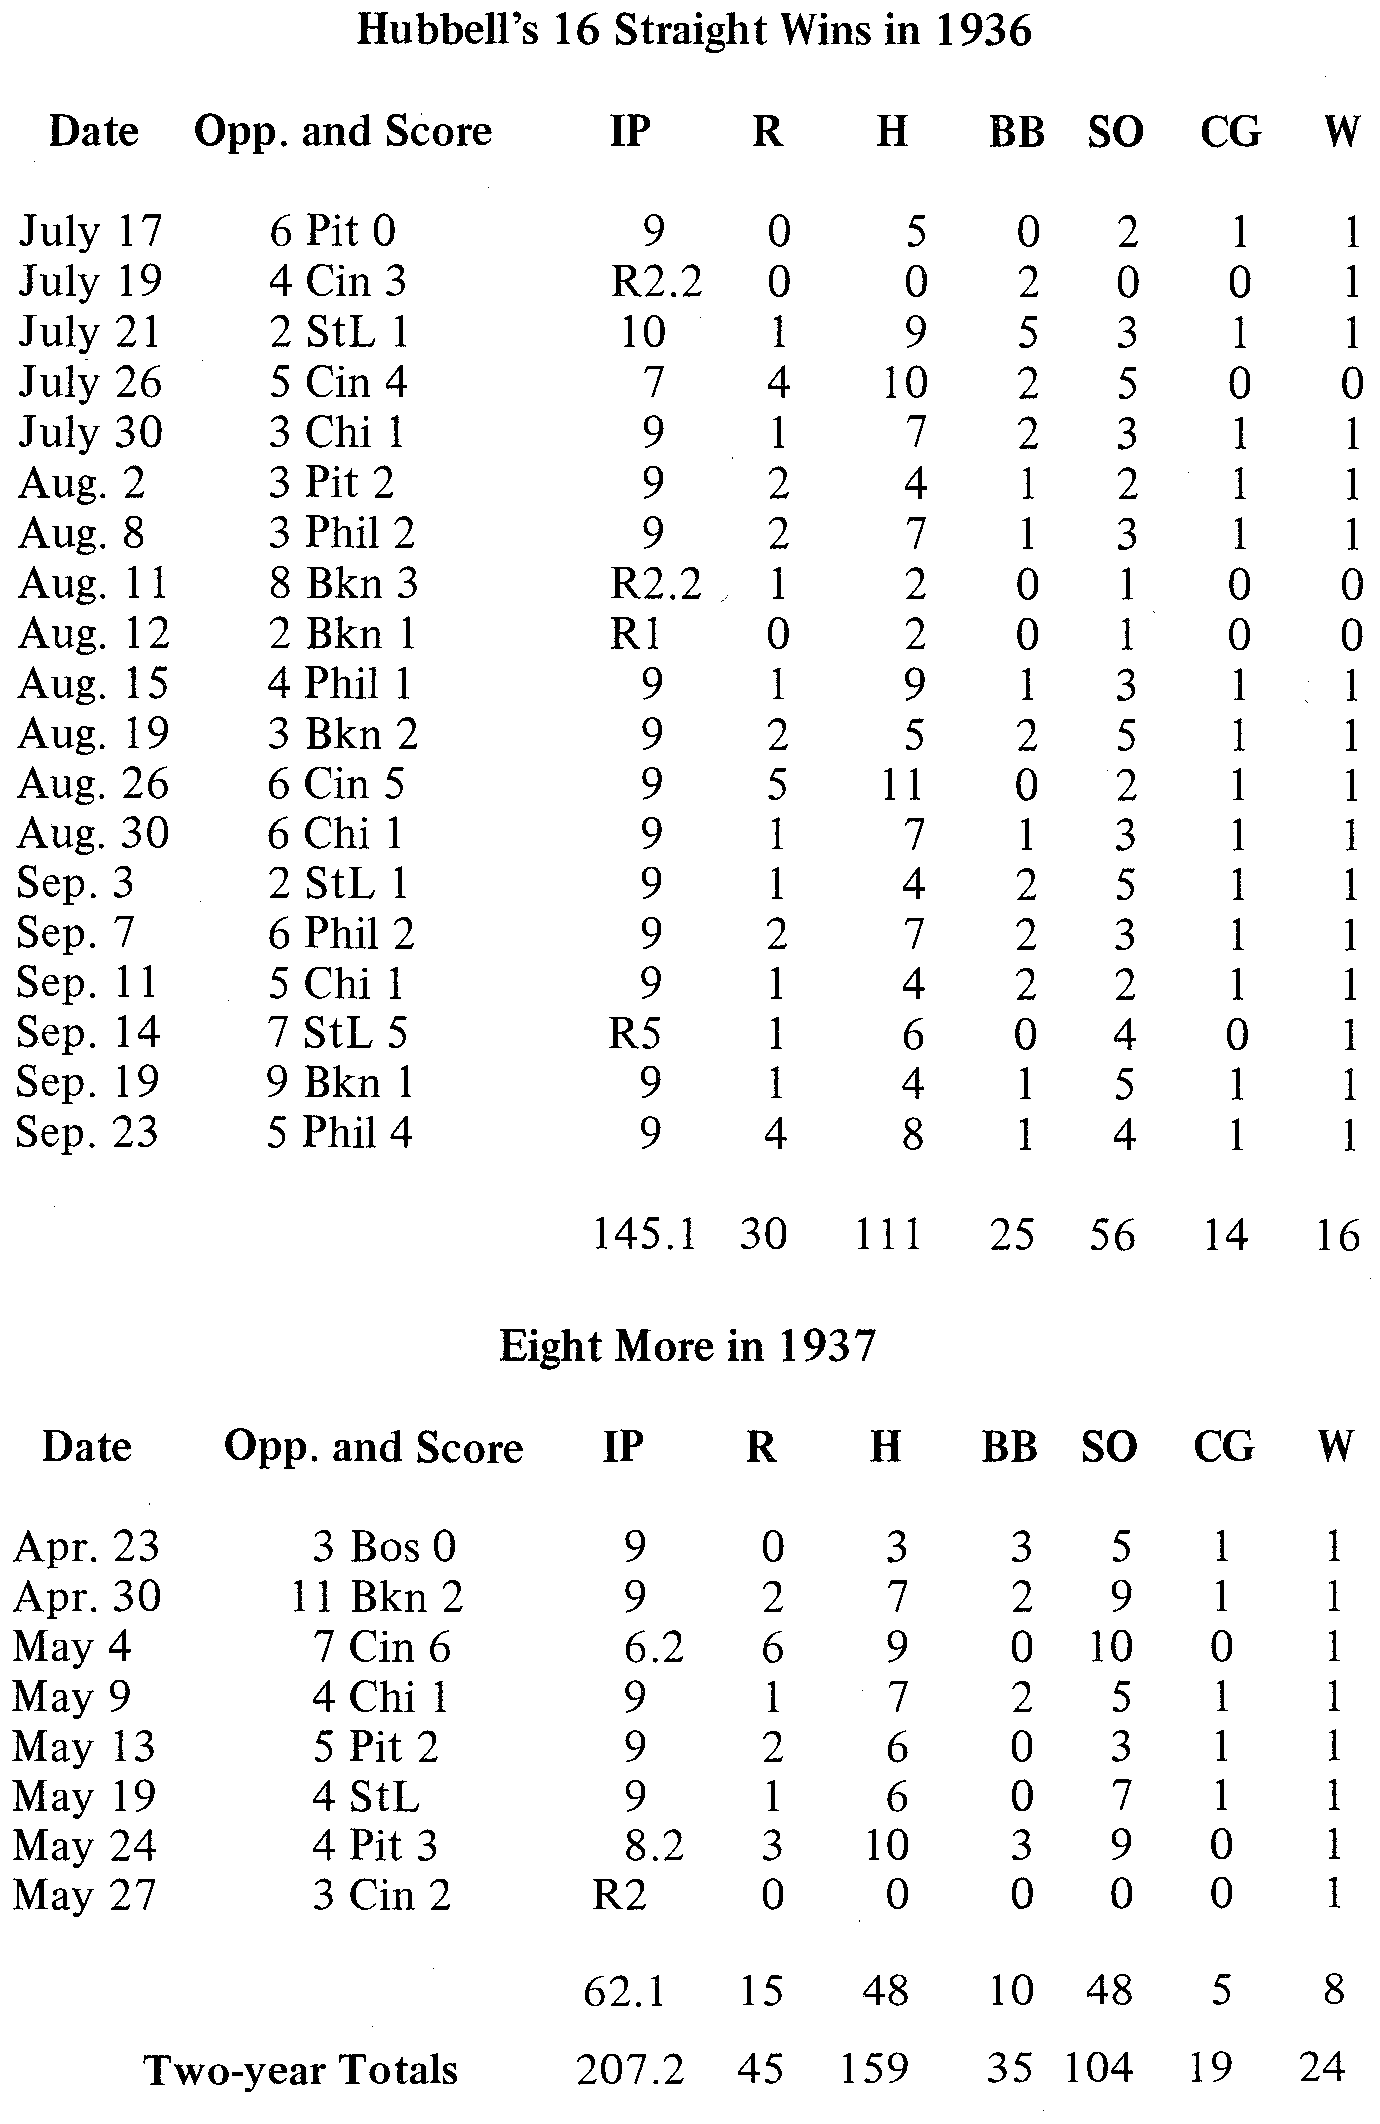 Carl Hubbell's 24 straight victories in 1936-37